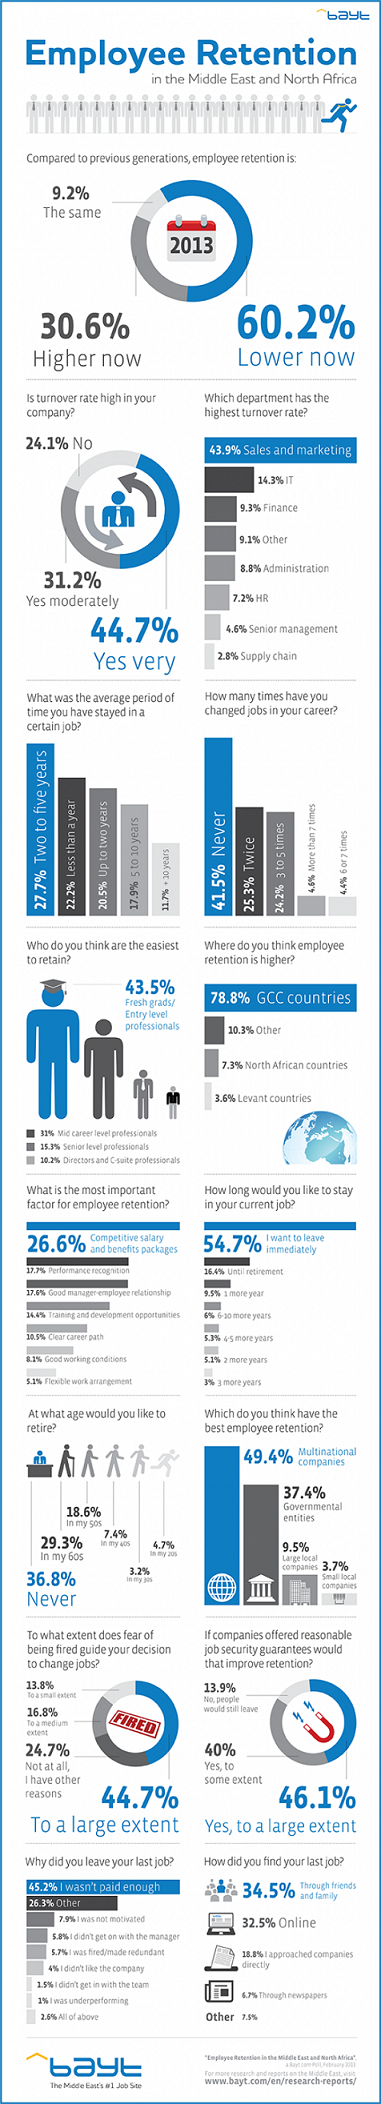 Employee Retention in The Middle East